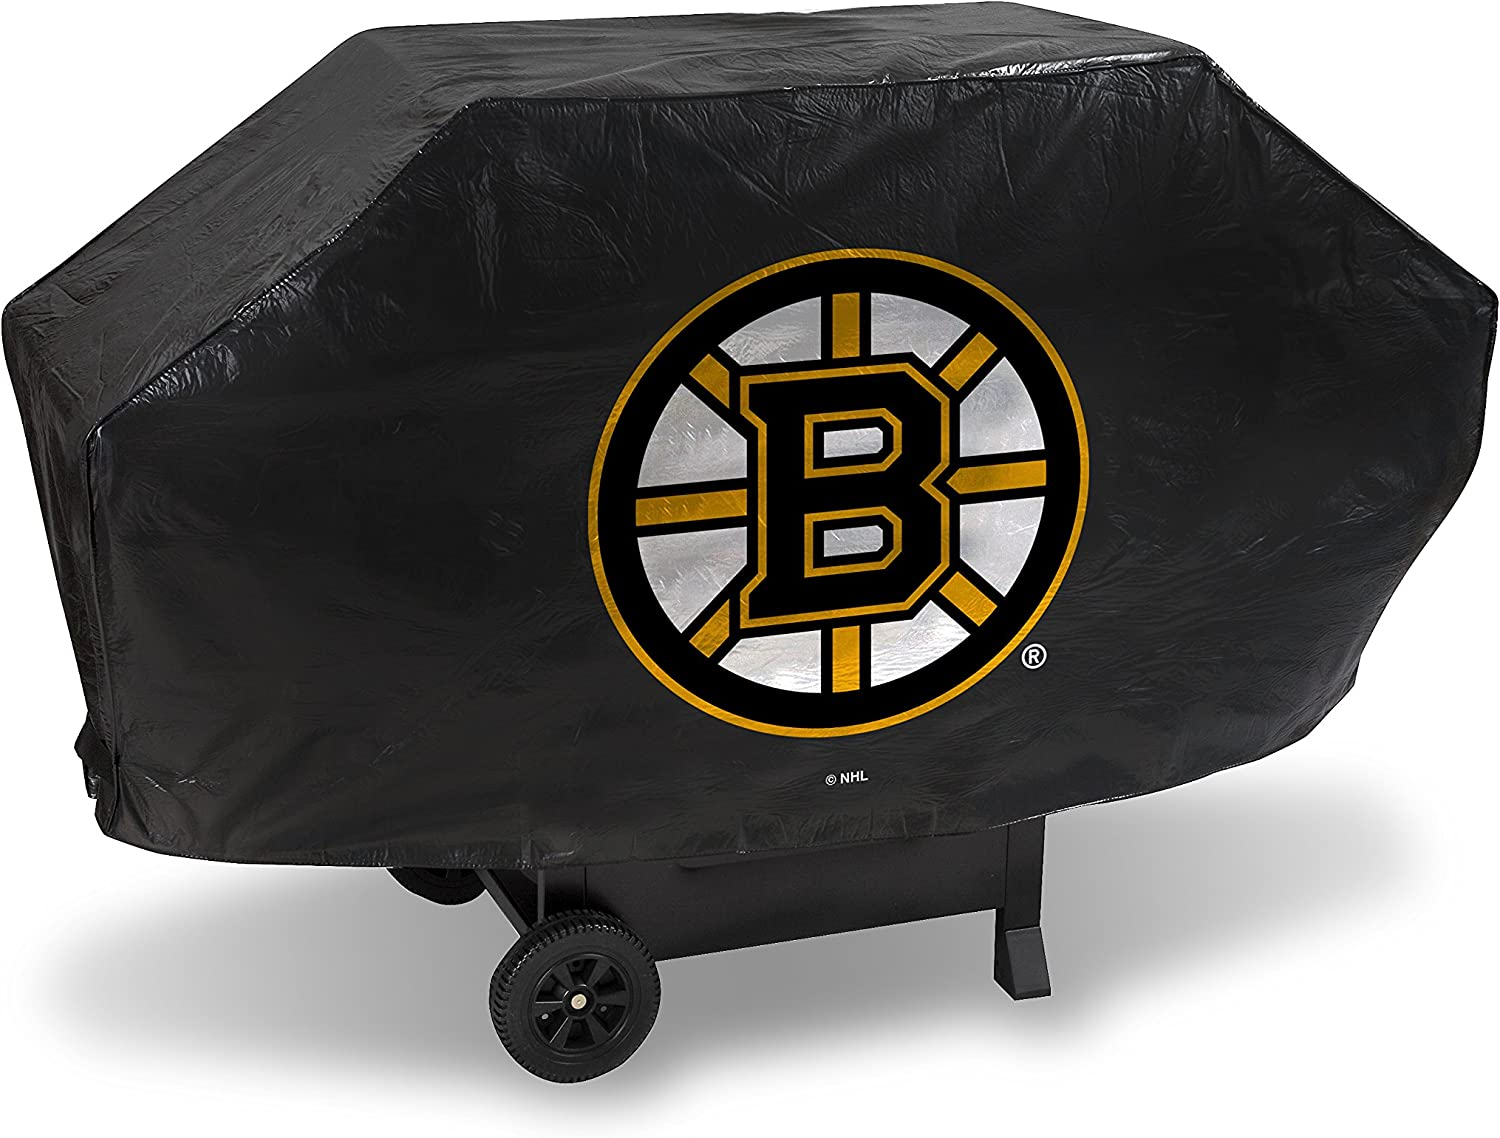 NHL Vinyl Padded Deluxe Grill Cover